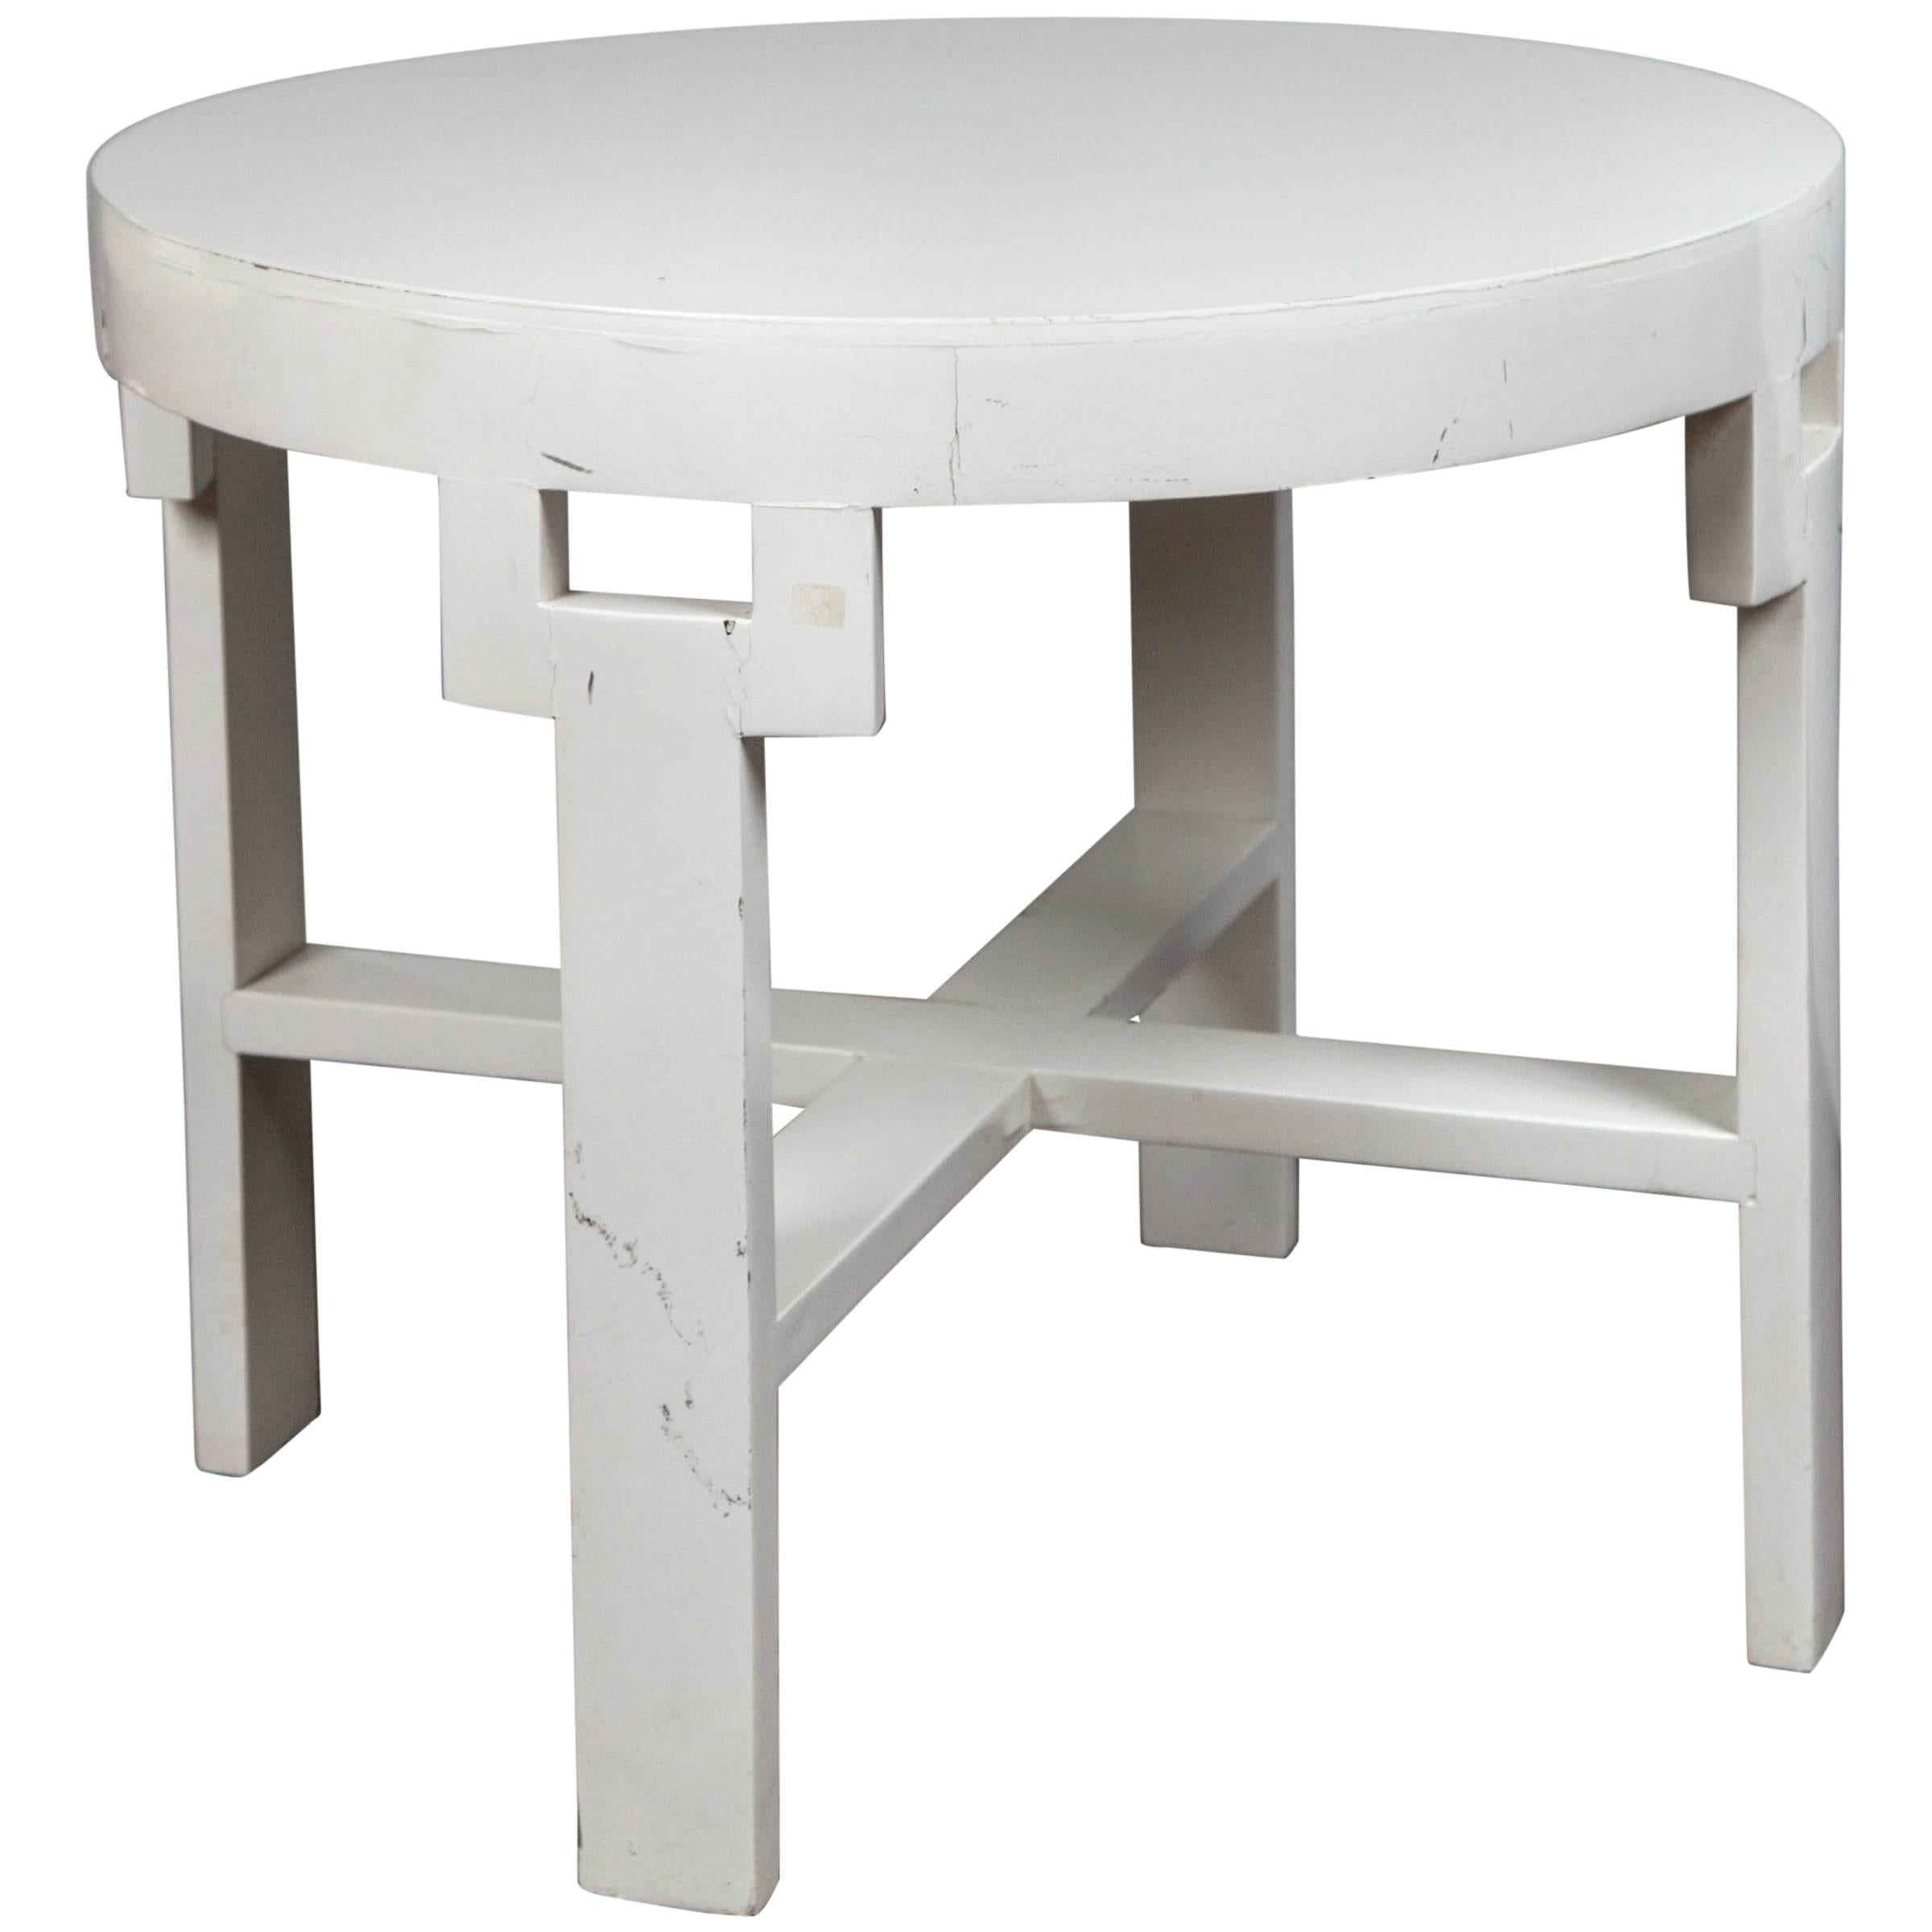 Authentic Dorothy Draper Round Side Table Custom-Made for the Greenbrier Resort